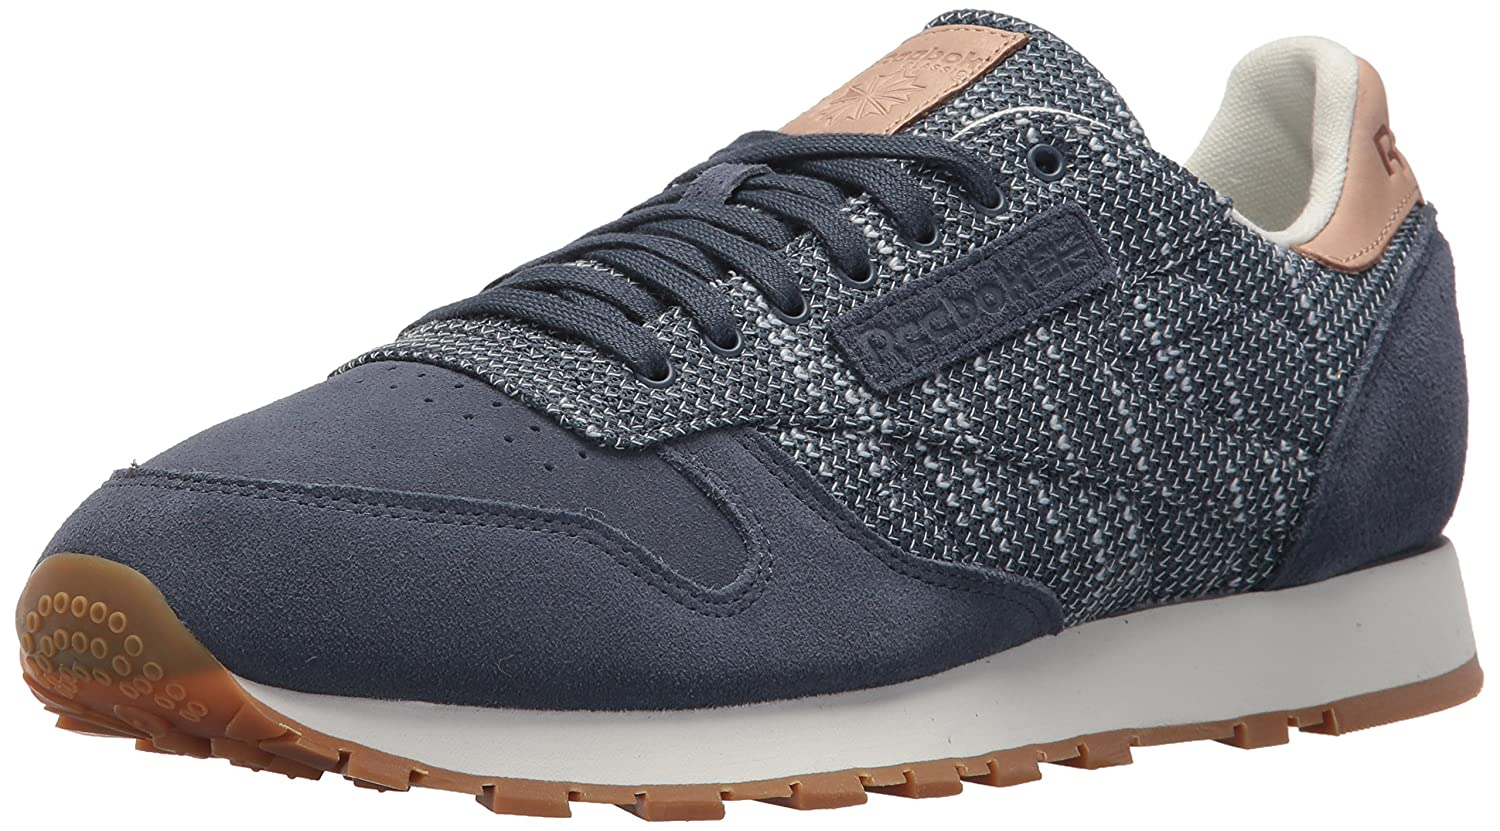 Reebok ReebokCL Leather Ebk   CI Leder Ebk Herren Smoky Indigo/Cloud Grey/C